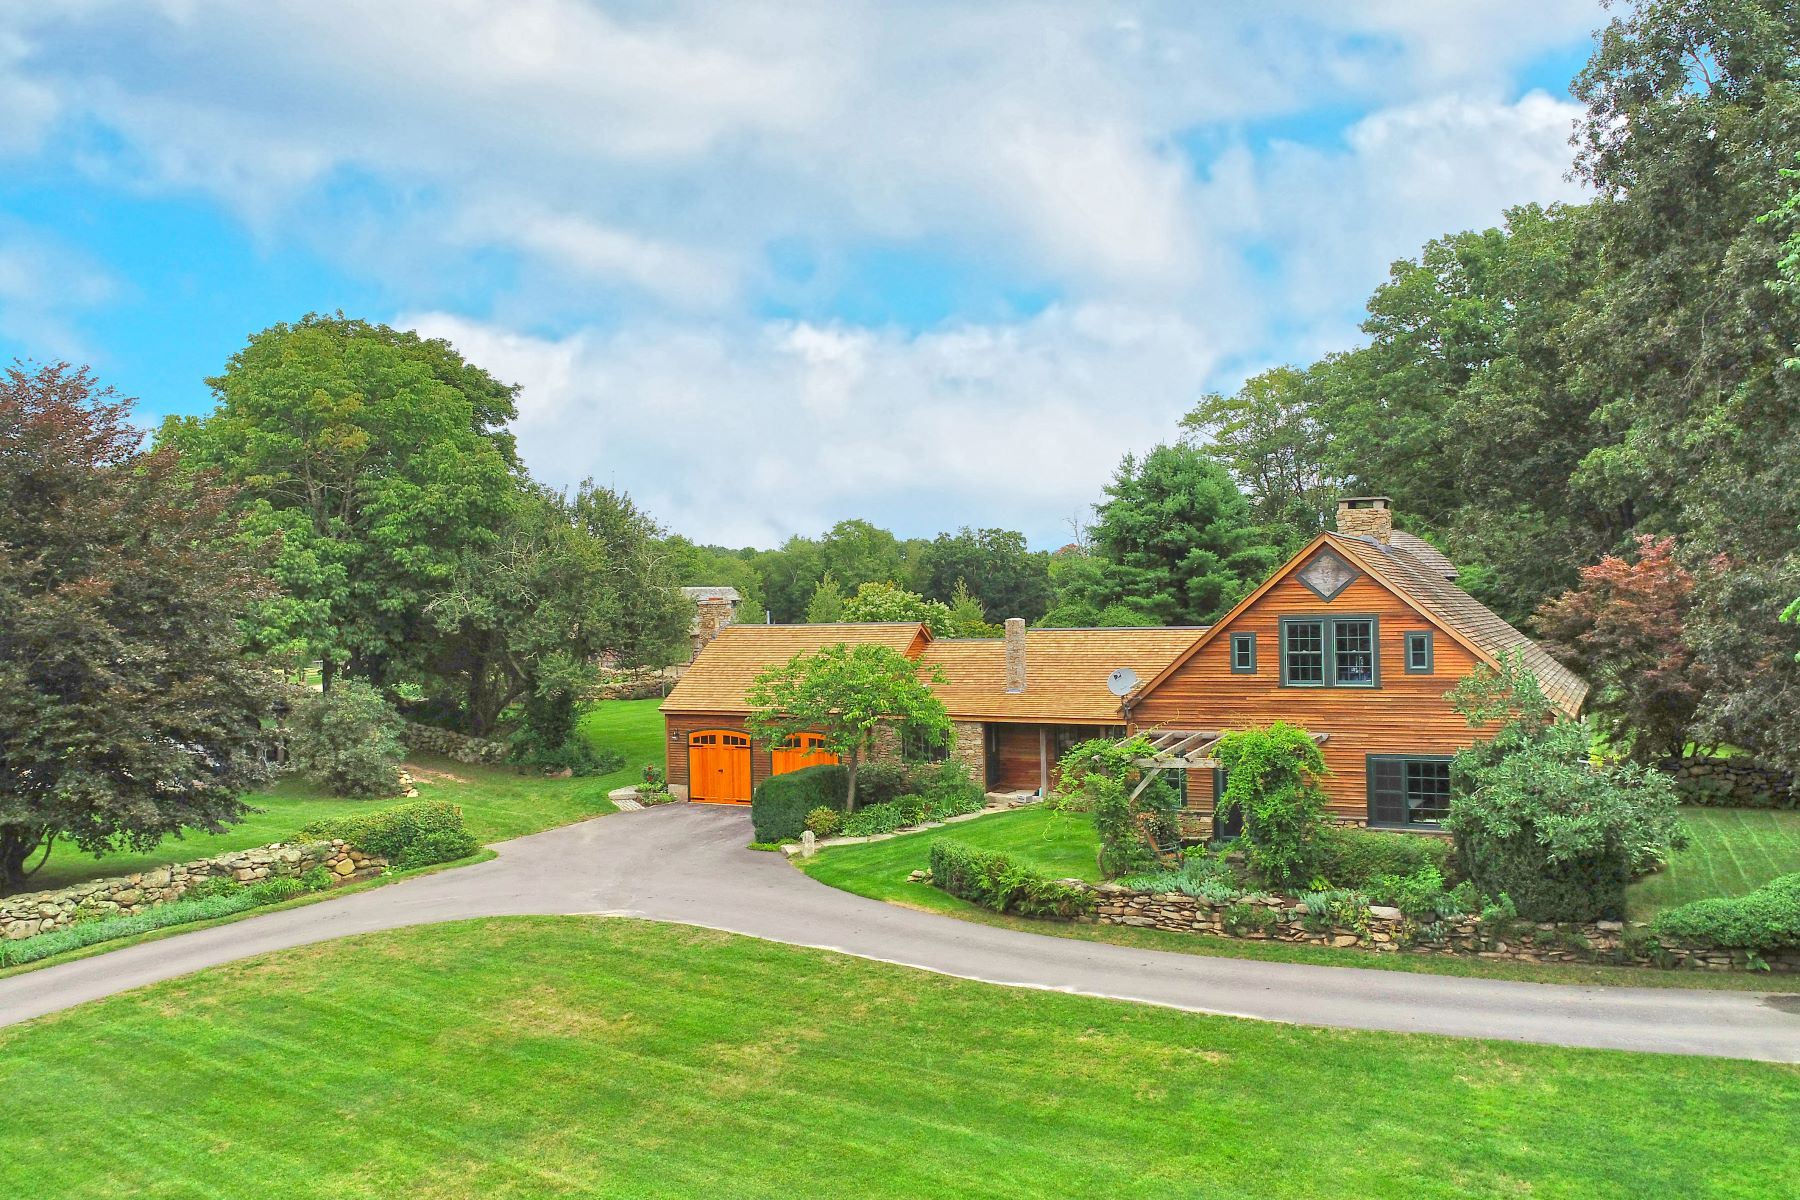 Single Family Homes for Sale at 79 Pine Woods Road North Stonington, Connecticut 06359 United States